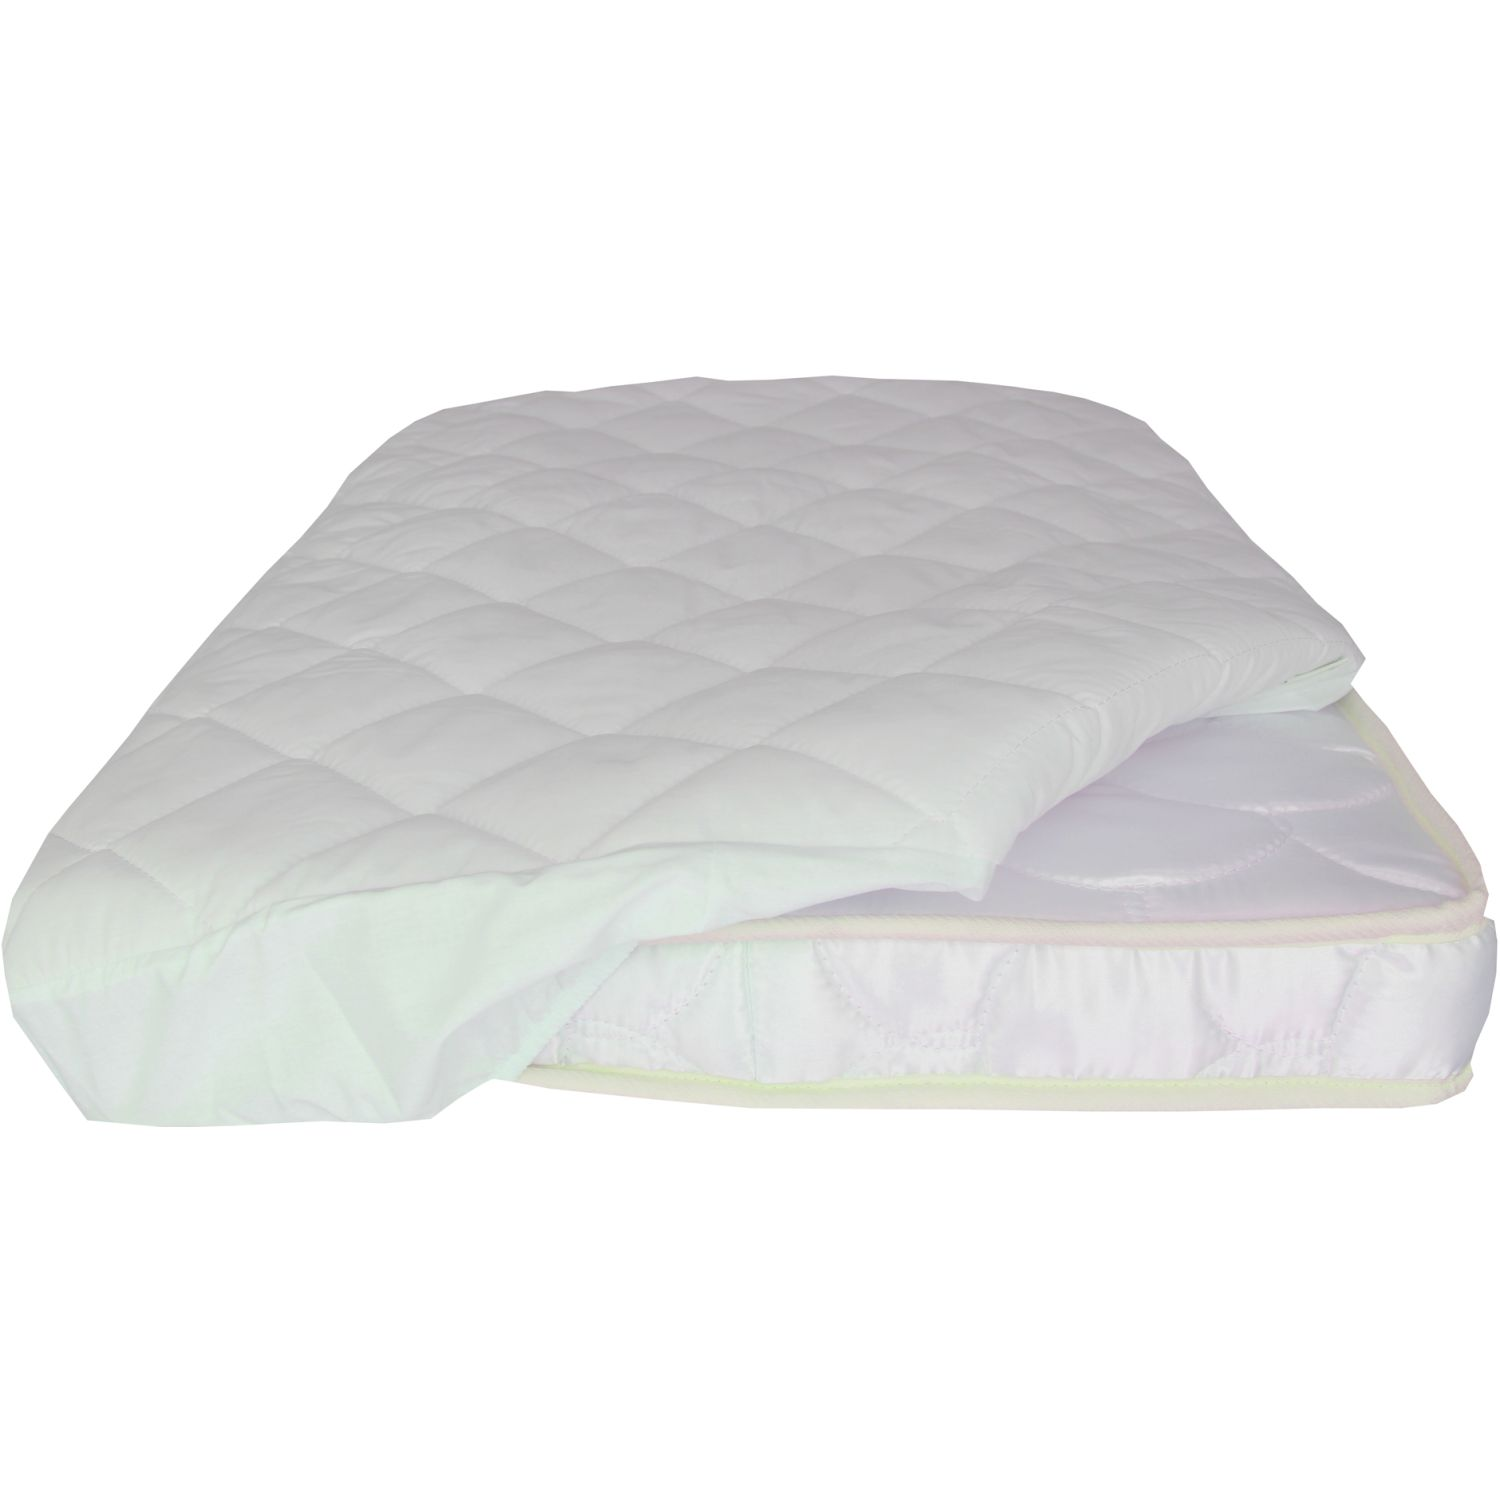 MATERNELLE Protector Impermeable Para Cama Cuna Blanco Cubrecolchones